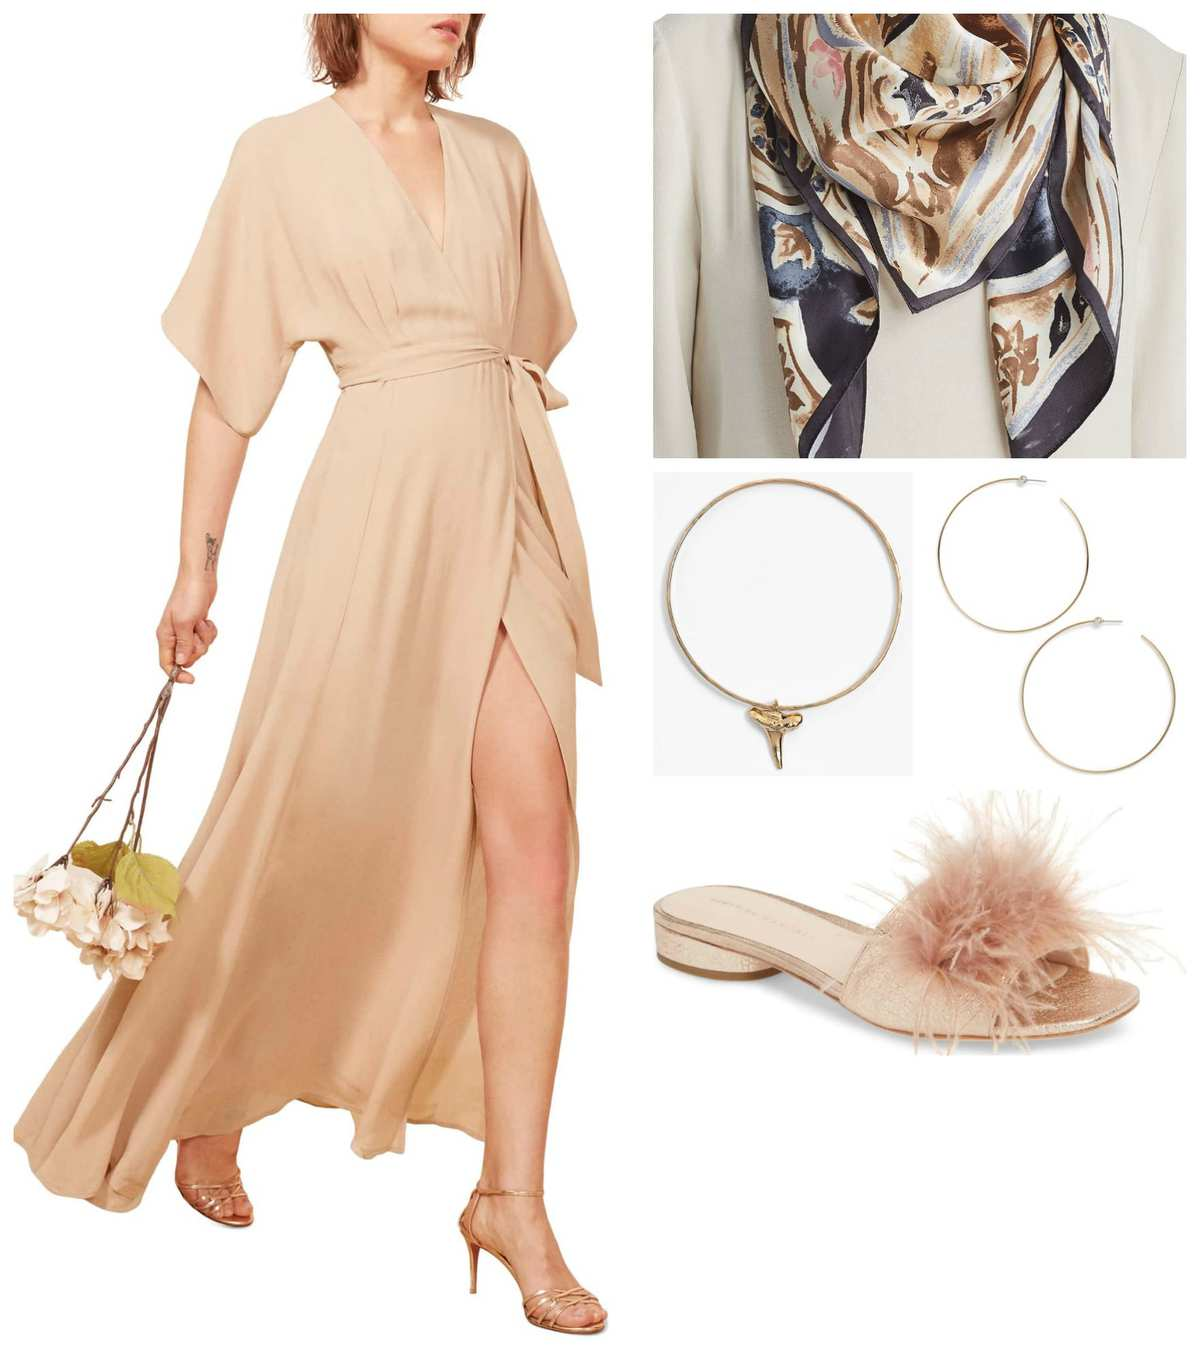 A maxi dress in a comfortable silhouette is a perfect choice when figuring out what to wear as a hostess and hosting a party in your home